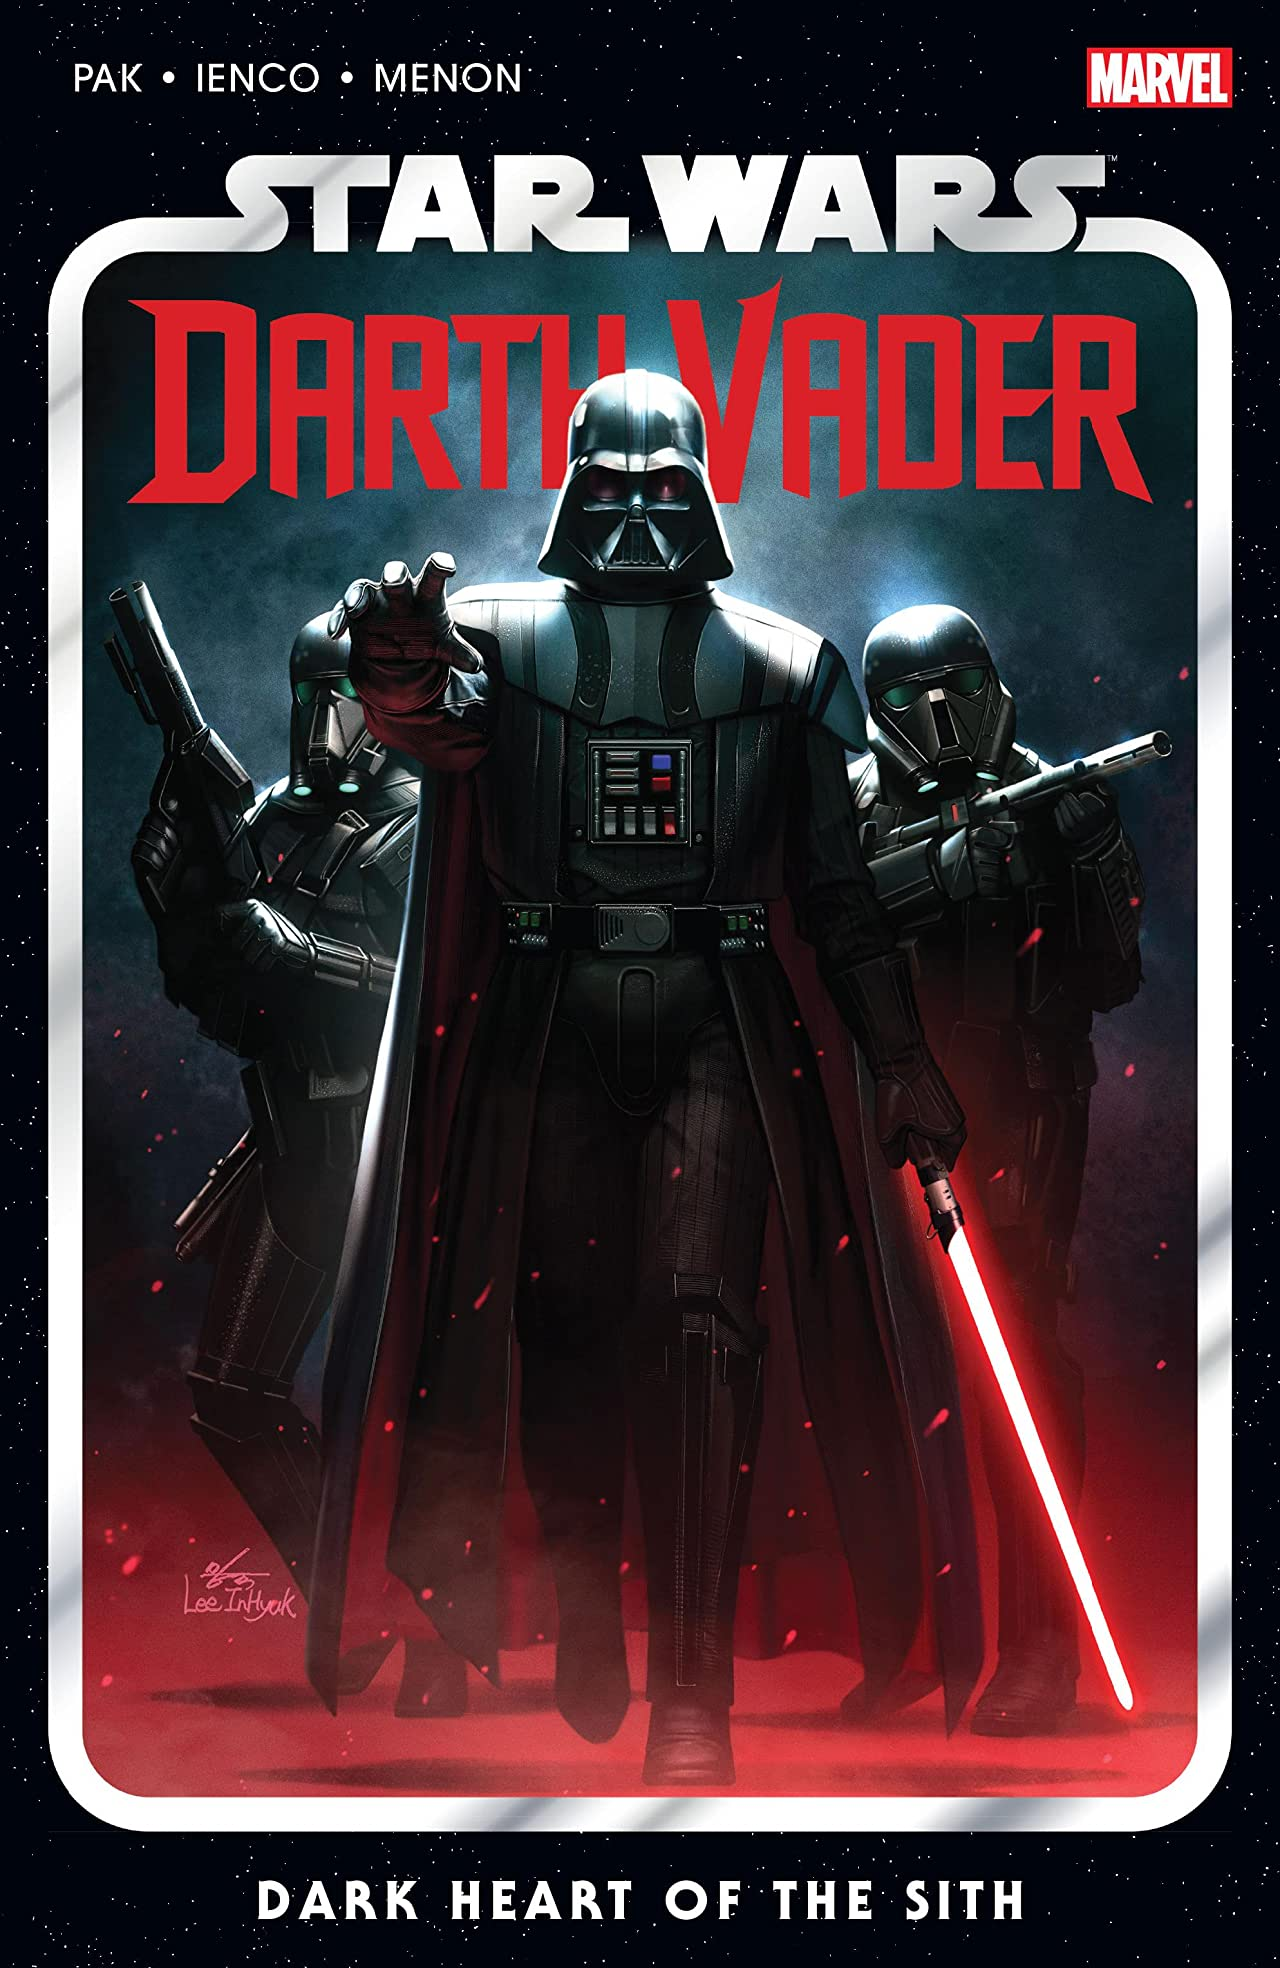 Darth Vader Volume 1: Dark Heart of the Sith (24.11.2020)